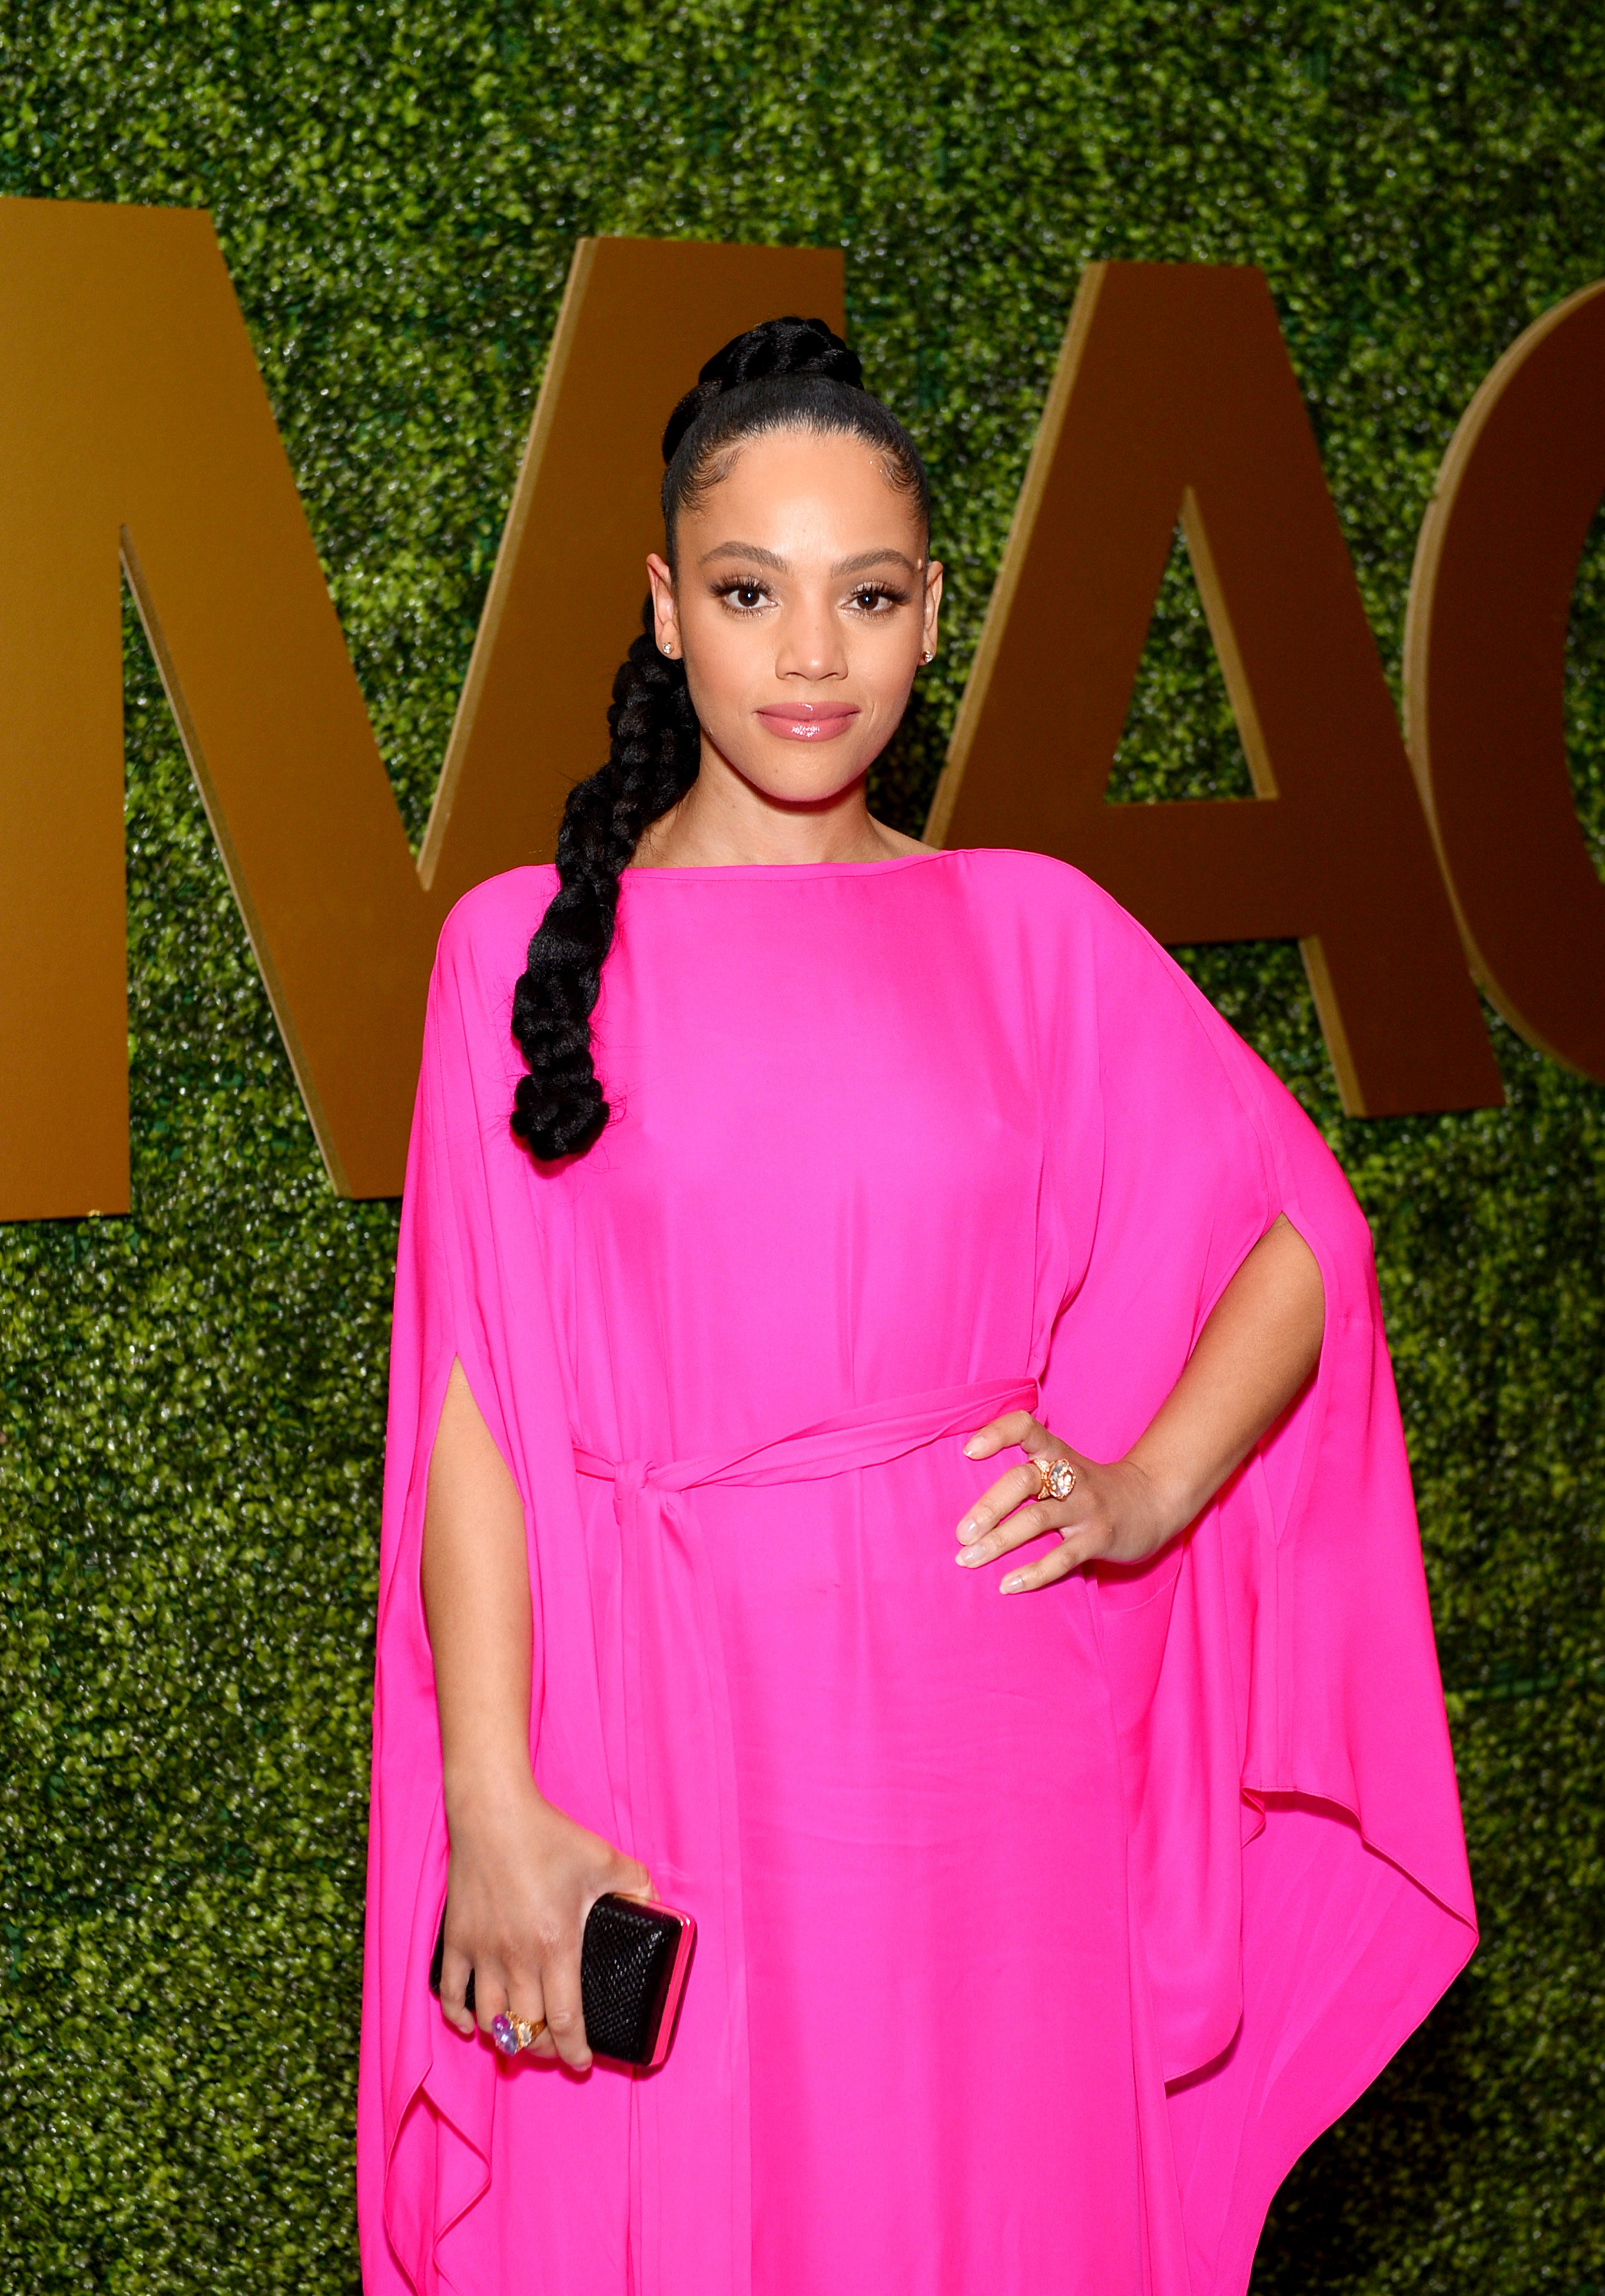 Bianca Lawson attends the 3rd Annual MACRO Pre-Oscar Party on February 06, 2020 | Photo: Getty Images